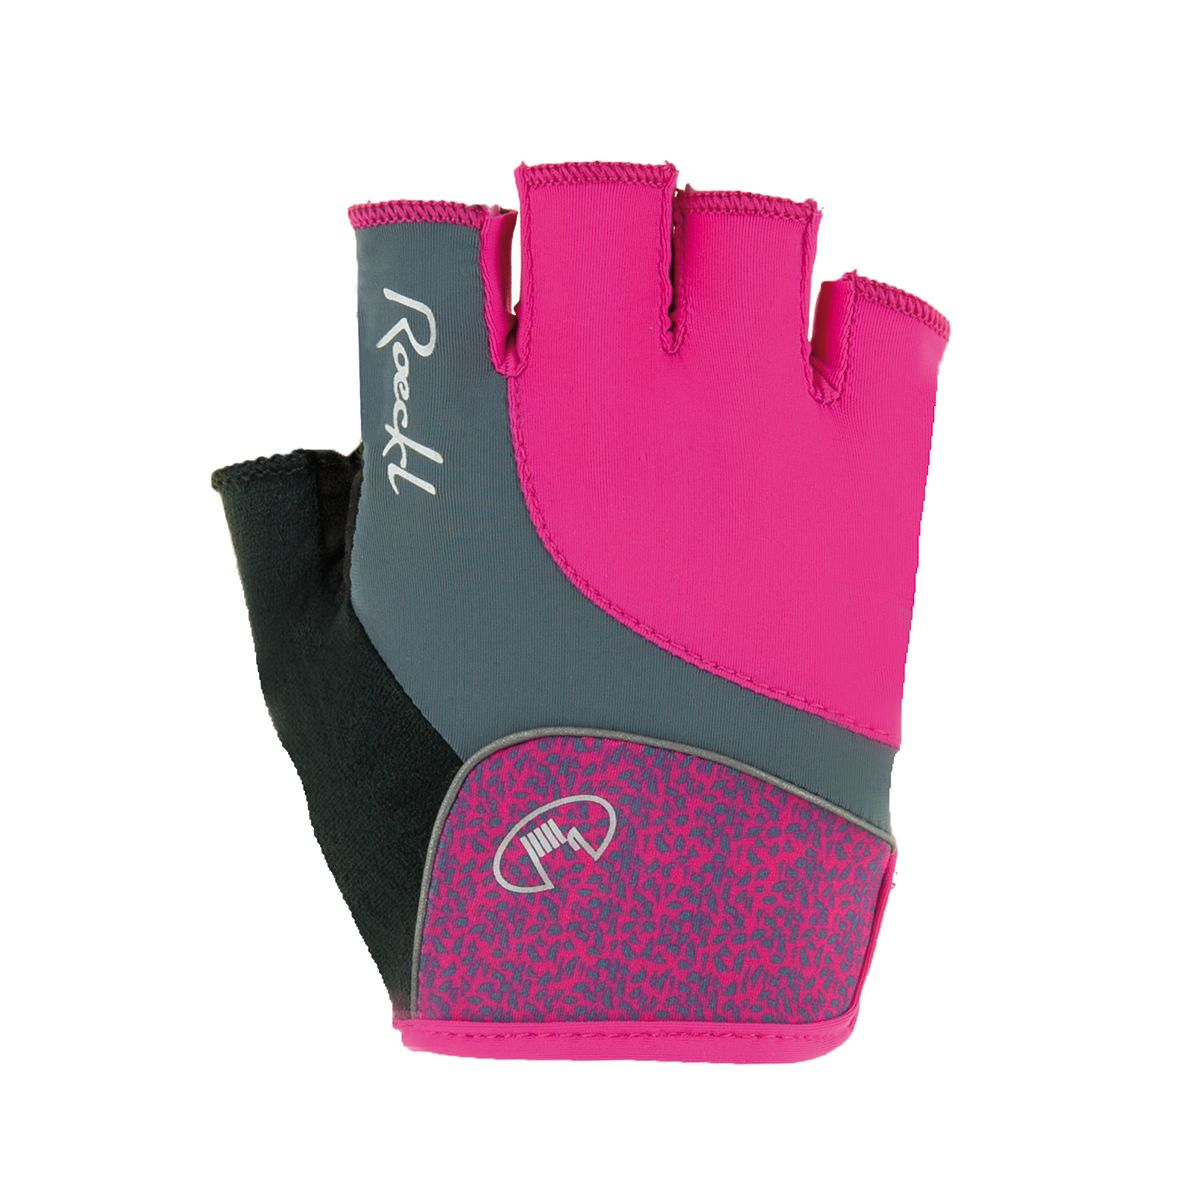 DANA women's cycling gloves